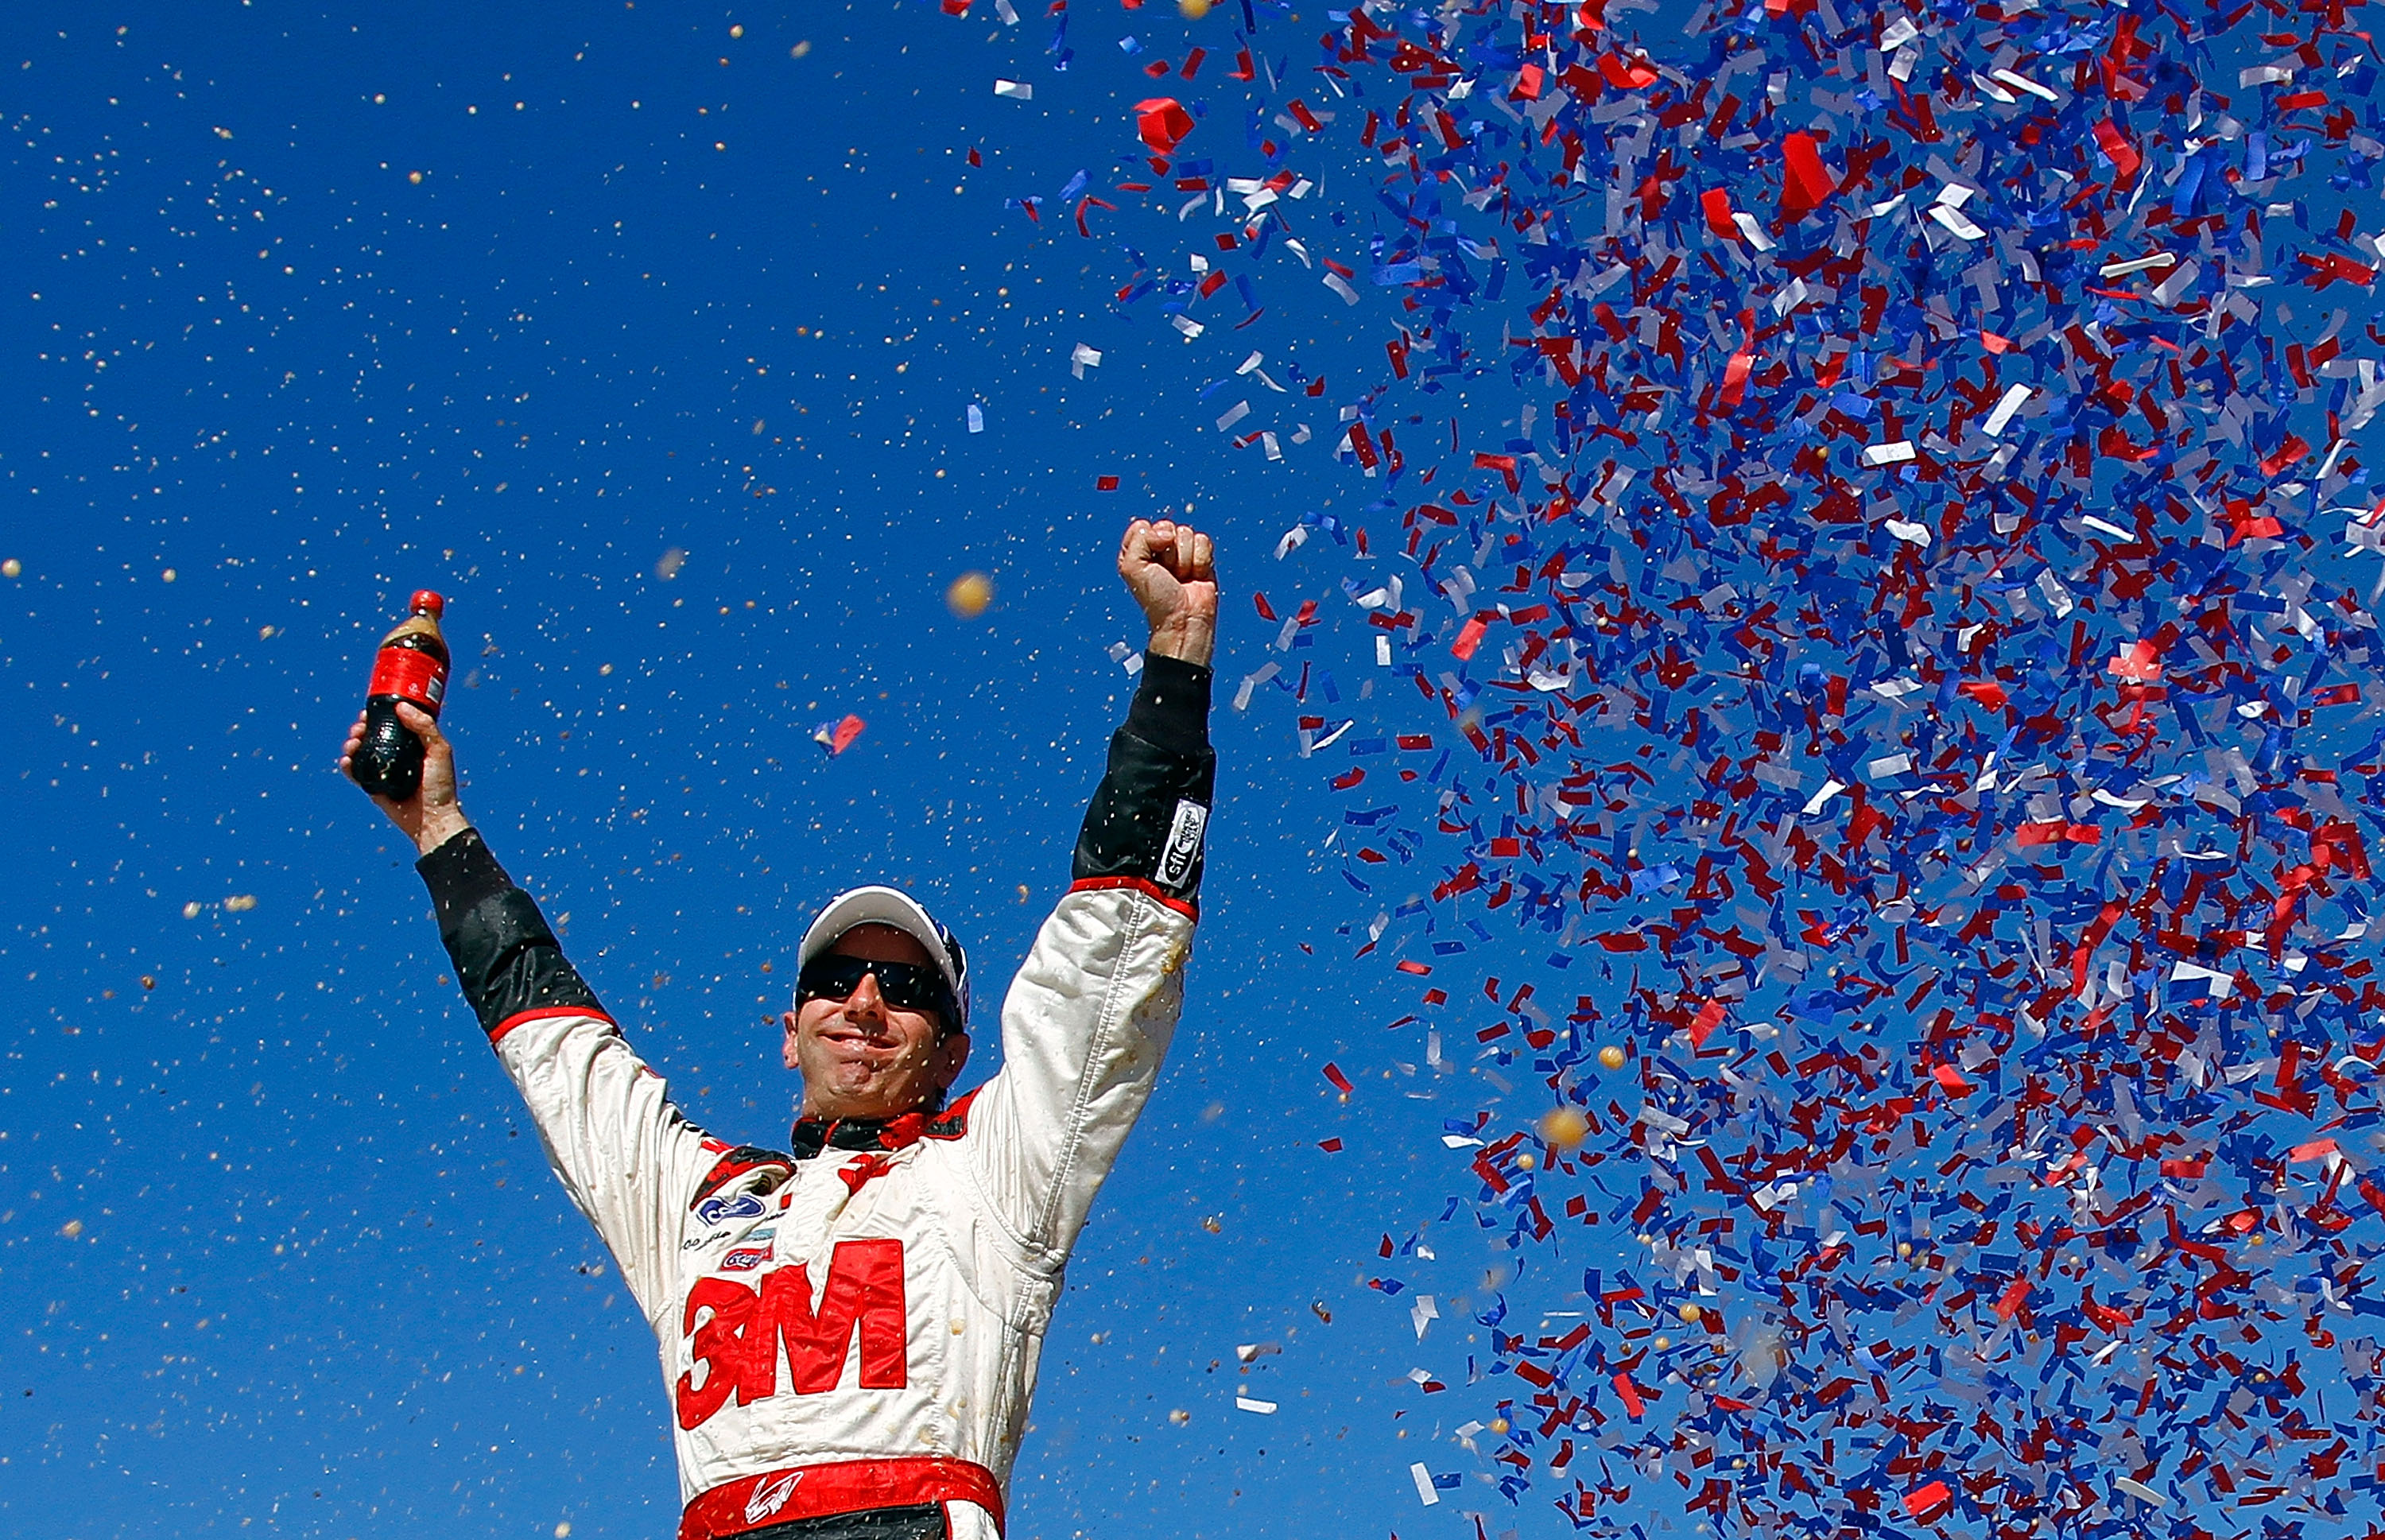 KANSAS CITY, KS - OCTOBER 03:  Greg Biffle, driver of the #16 3M Ford, celebrates in victory lane after winning the NASCAR Sprint Cup Series Price Chopper 400 on October 3, 2010 in Kansas City, Kansas.  (Photo by Jason Smith/Getty Images for NASCAR)